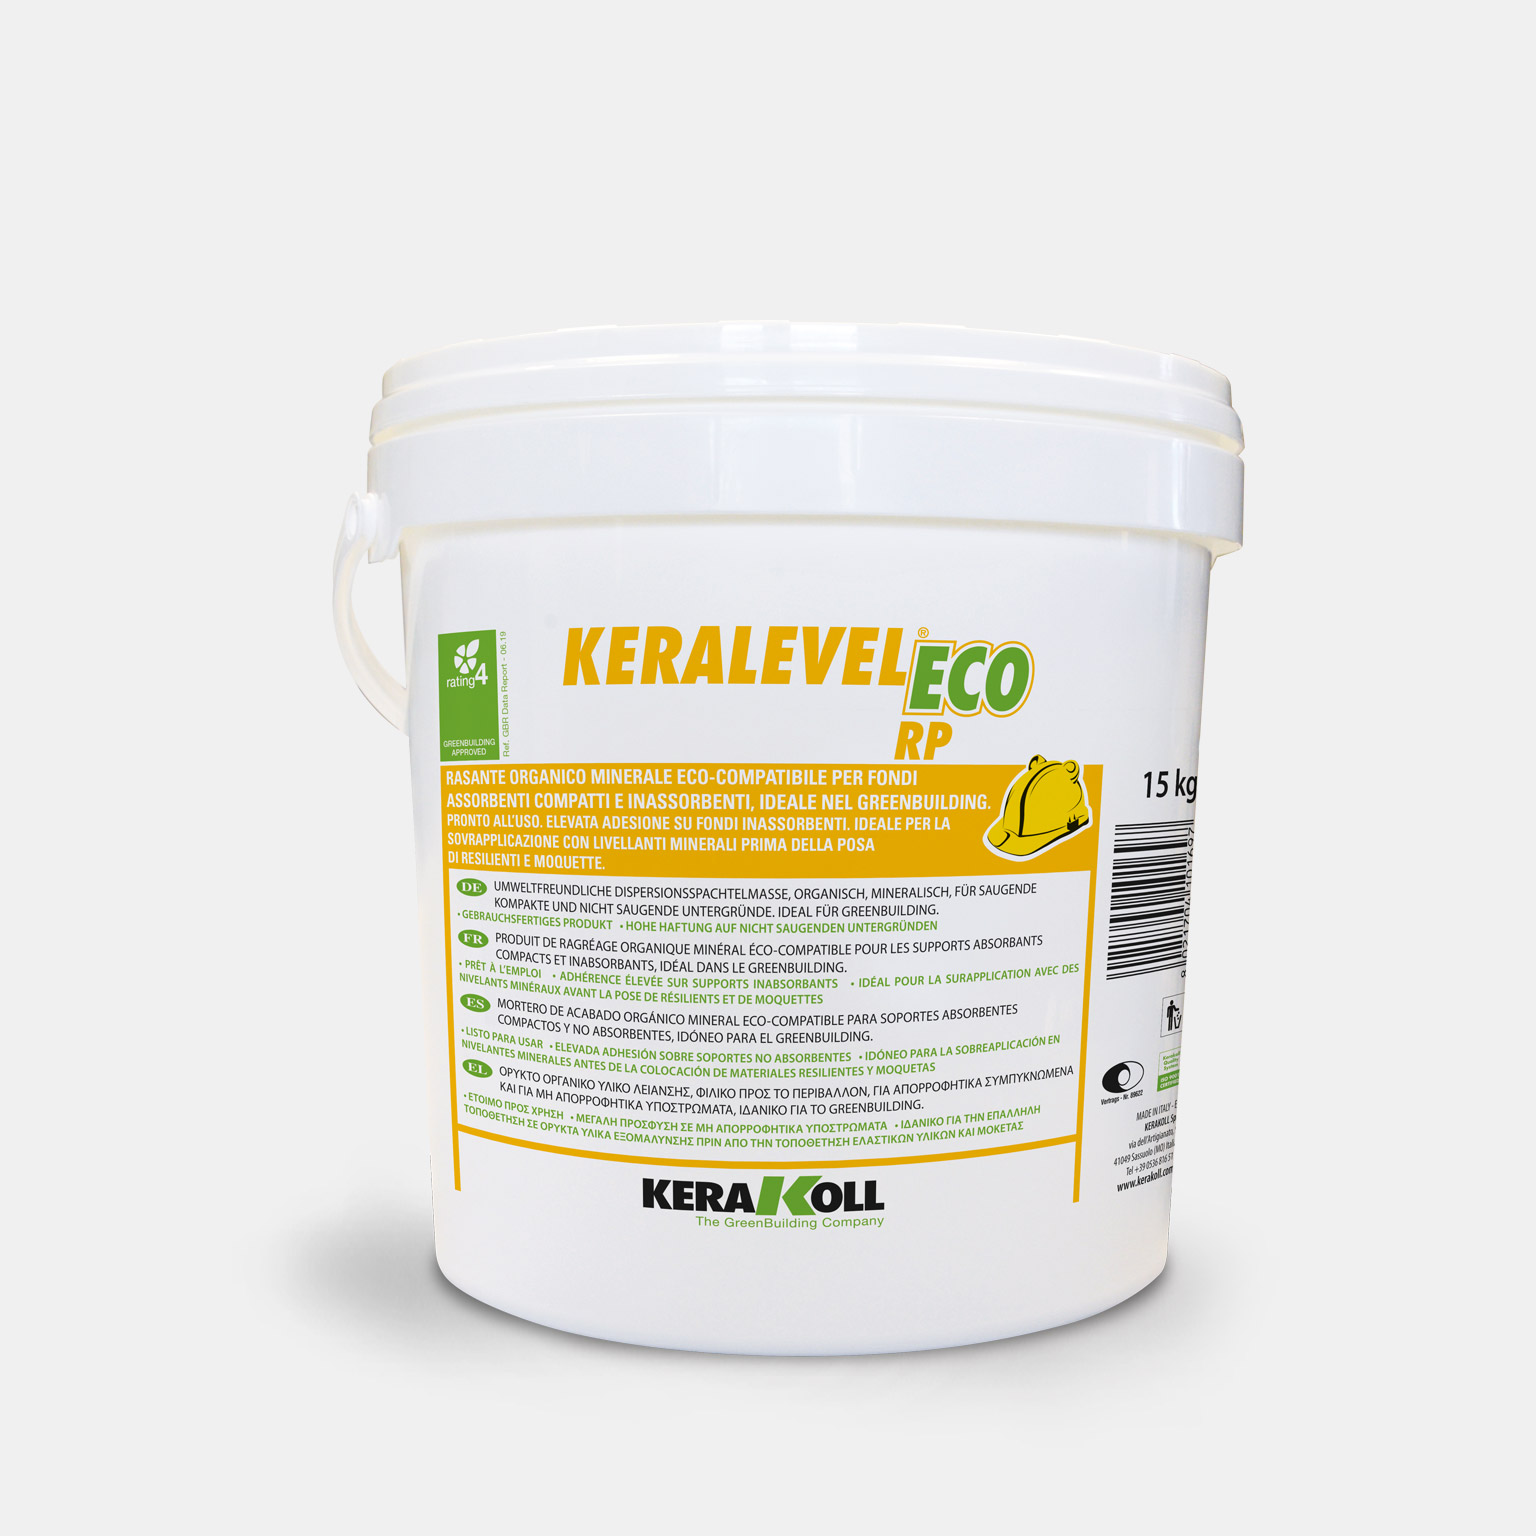 Keralevel Eco RP - immagine pack